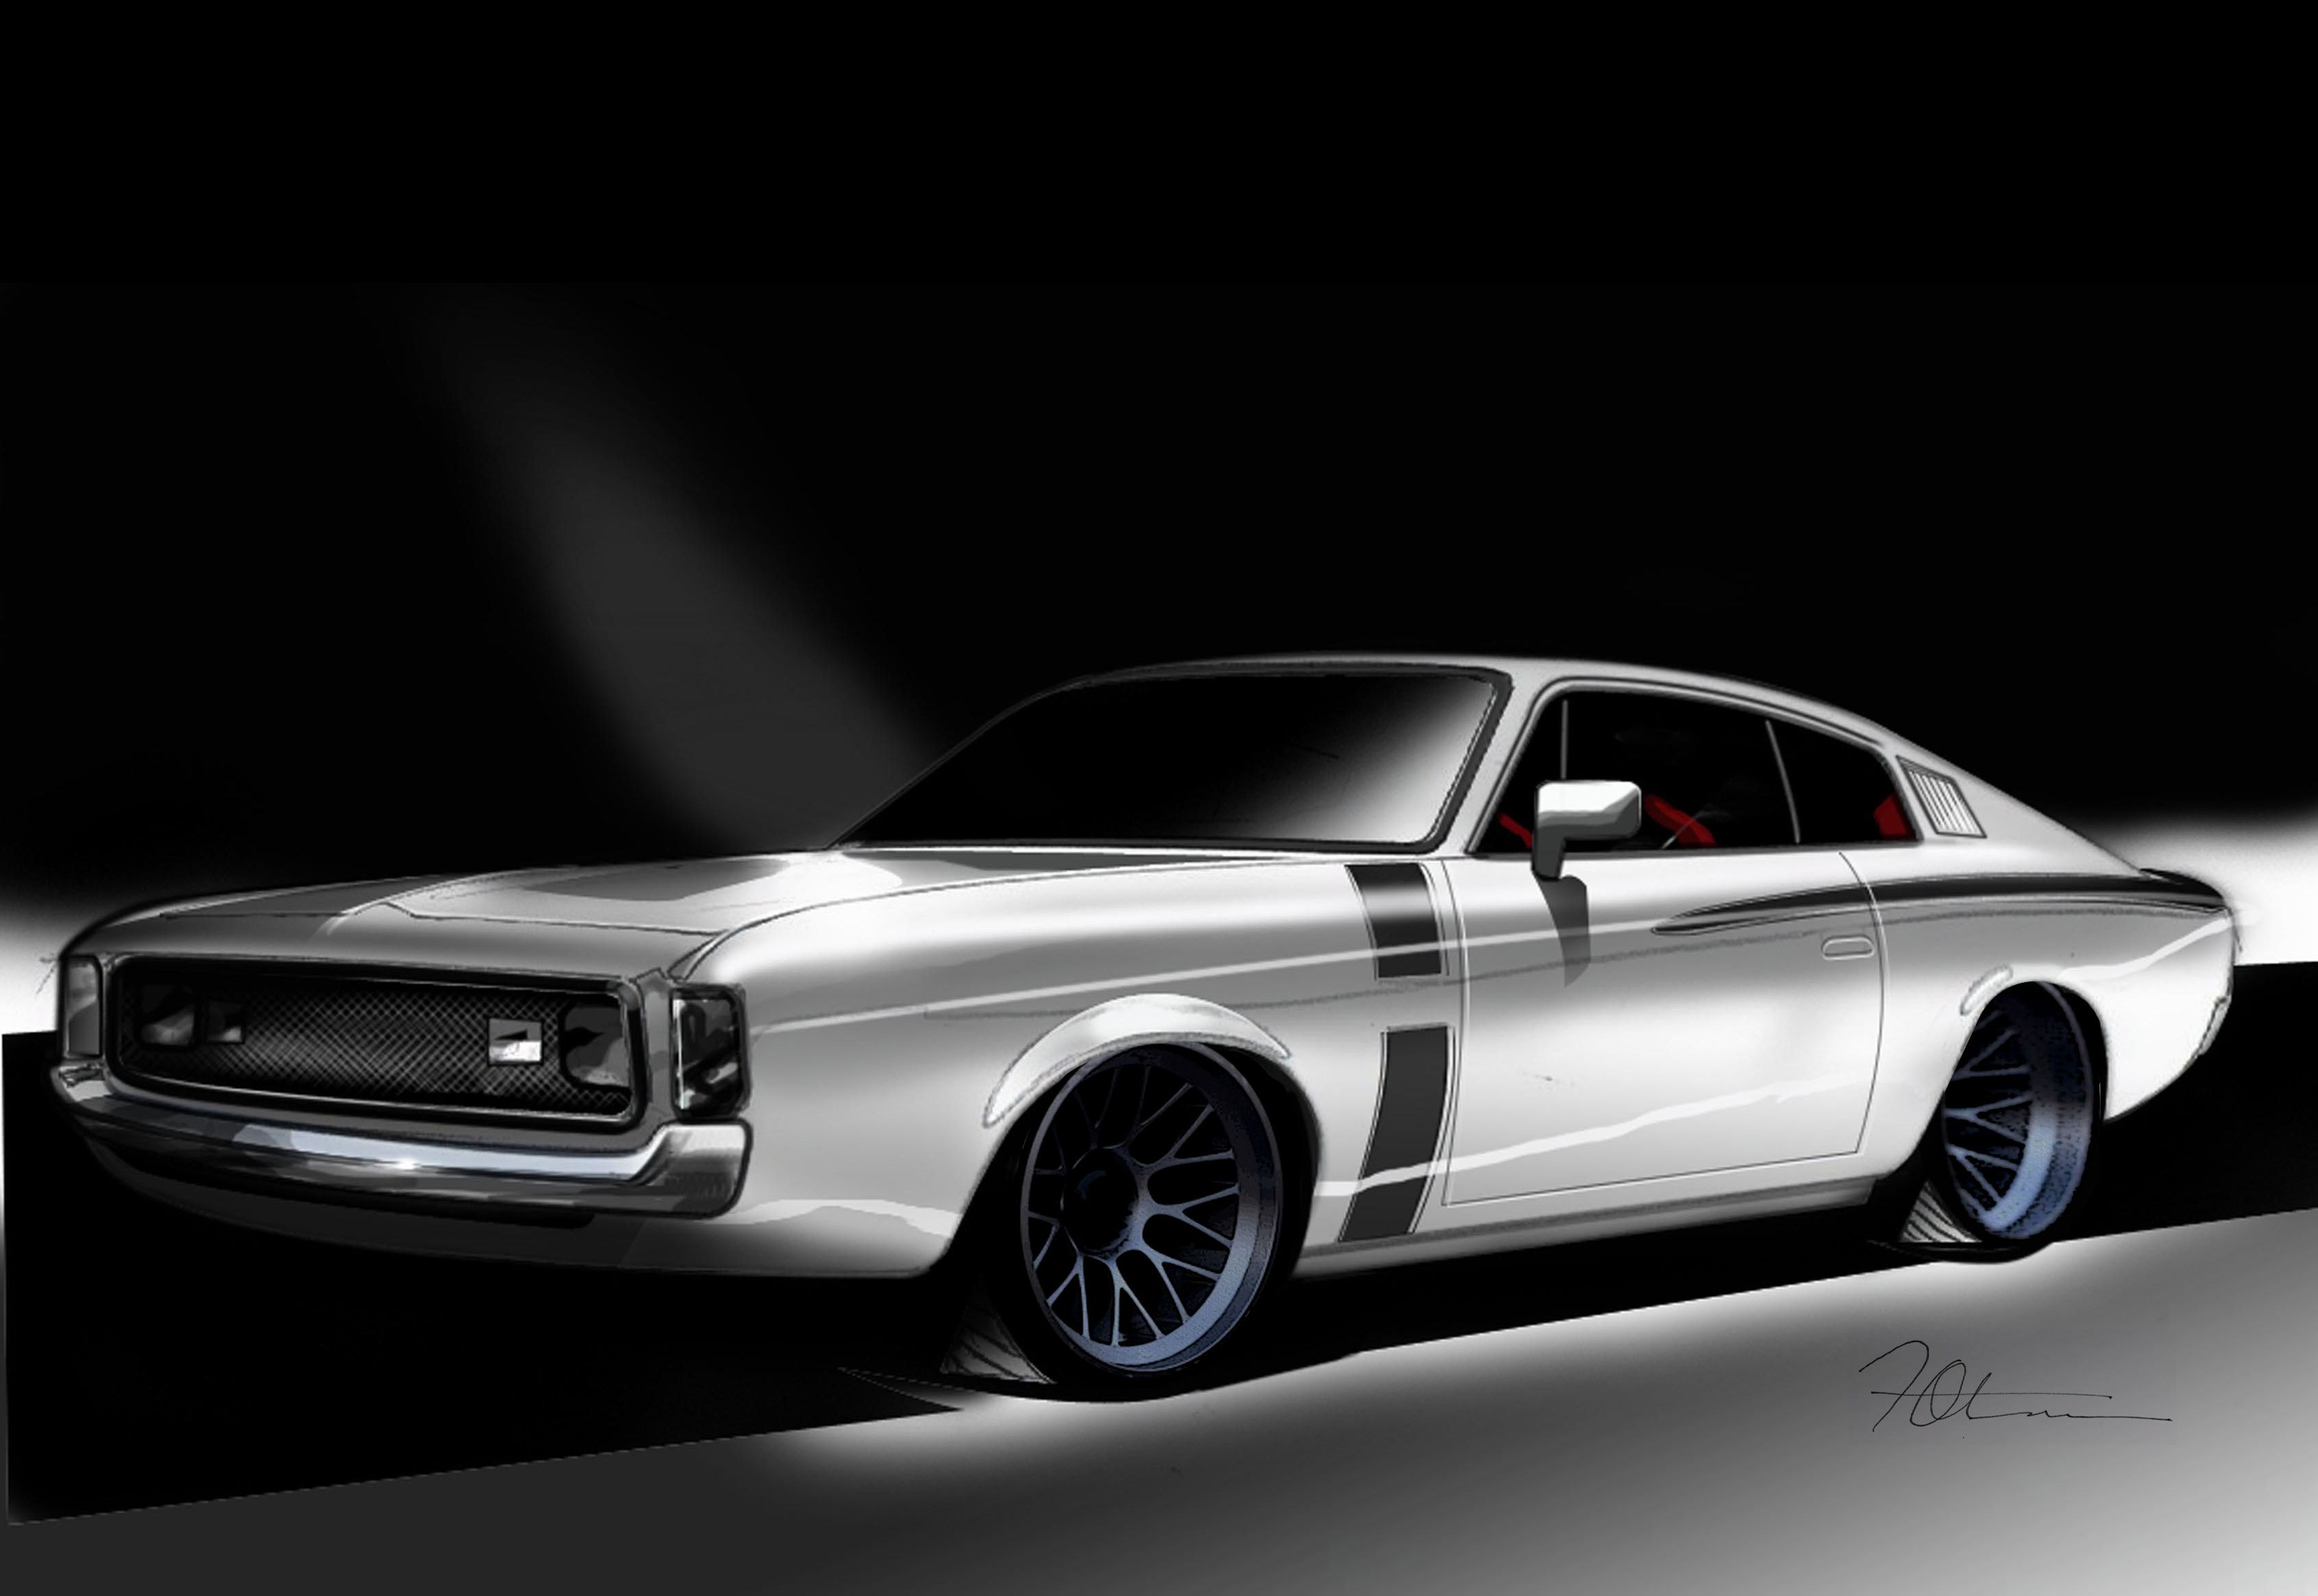 Aussies Valiant Charger Check Out Facebook And Instagram